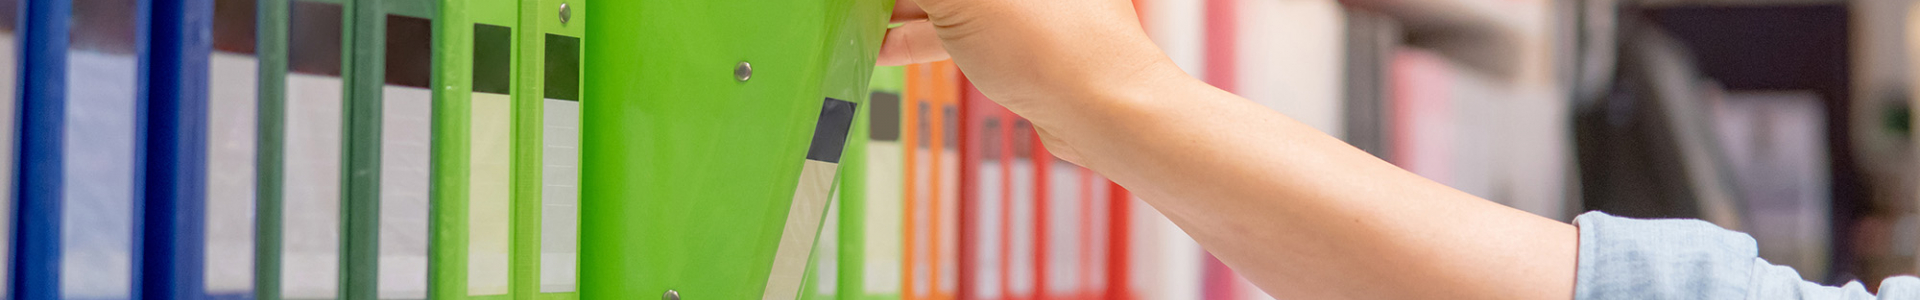 photo of someone grabbing a green binder off a shelf amidst other colorful binders